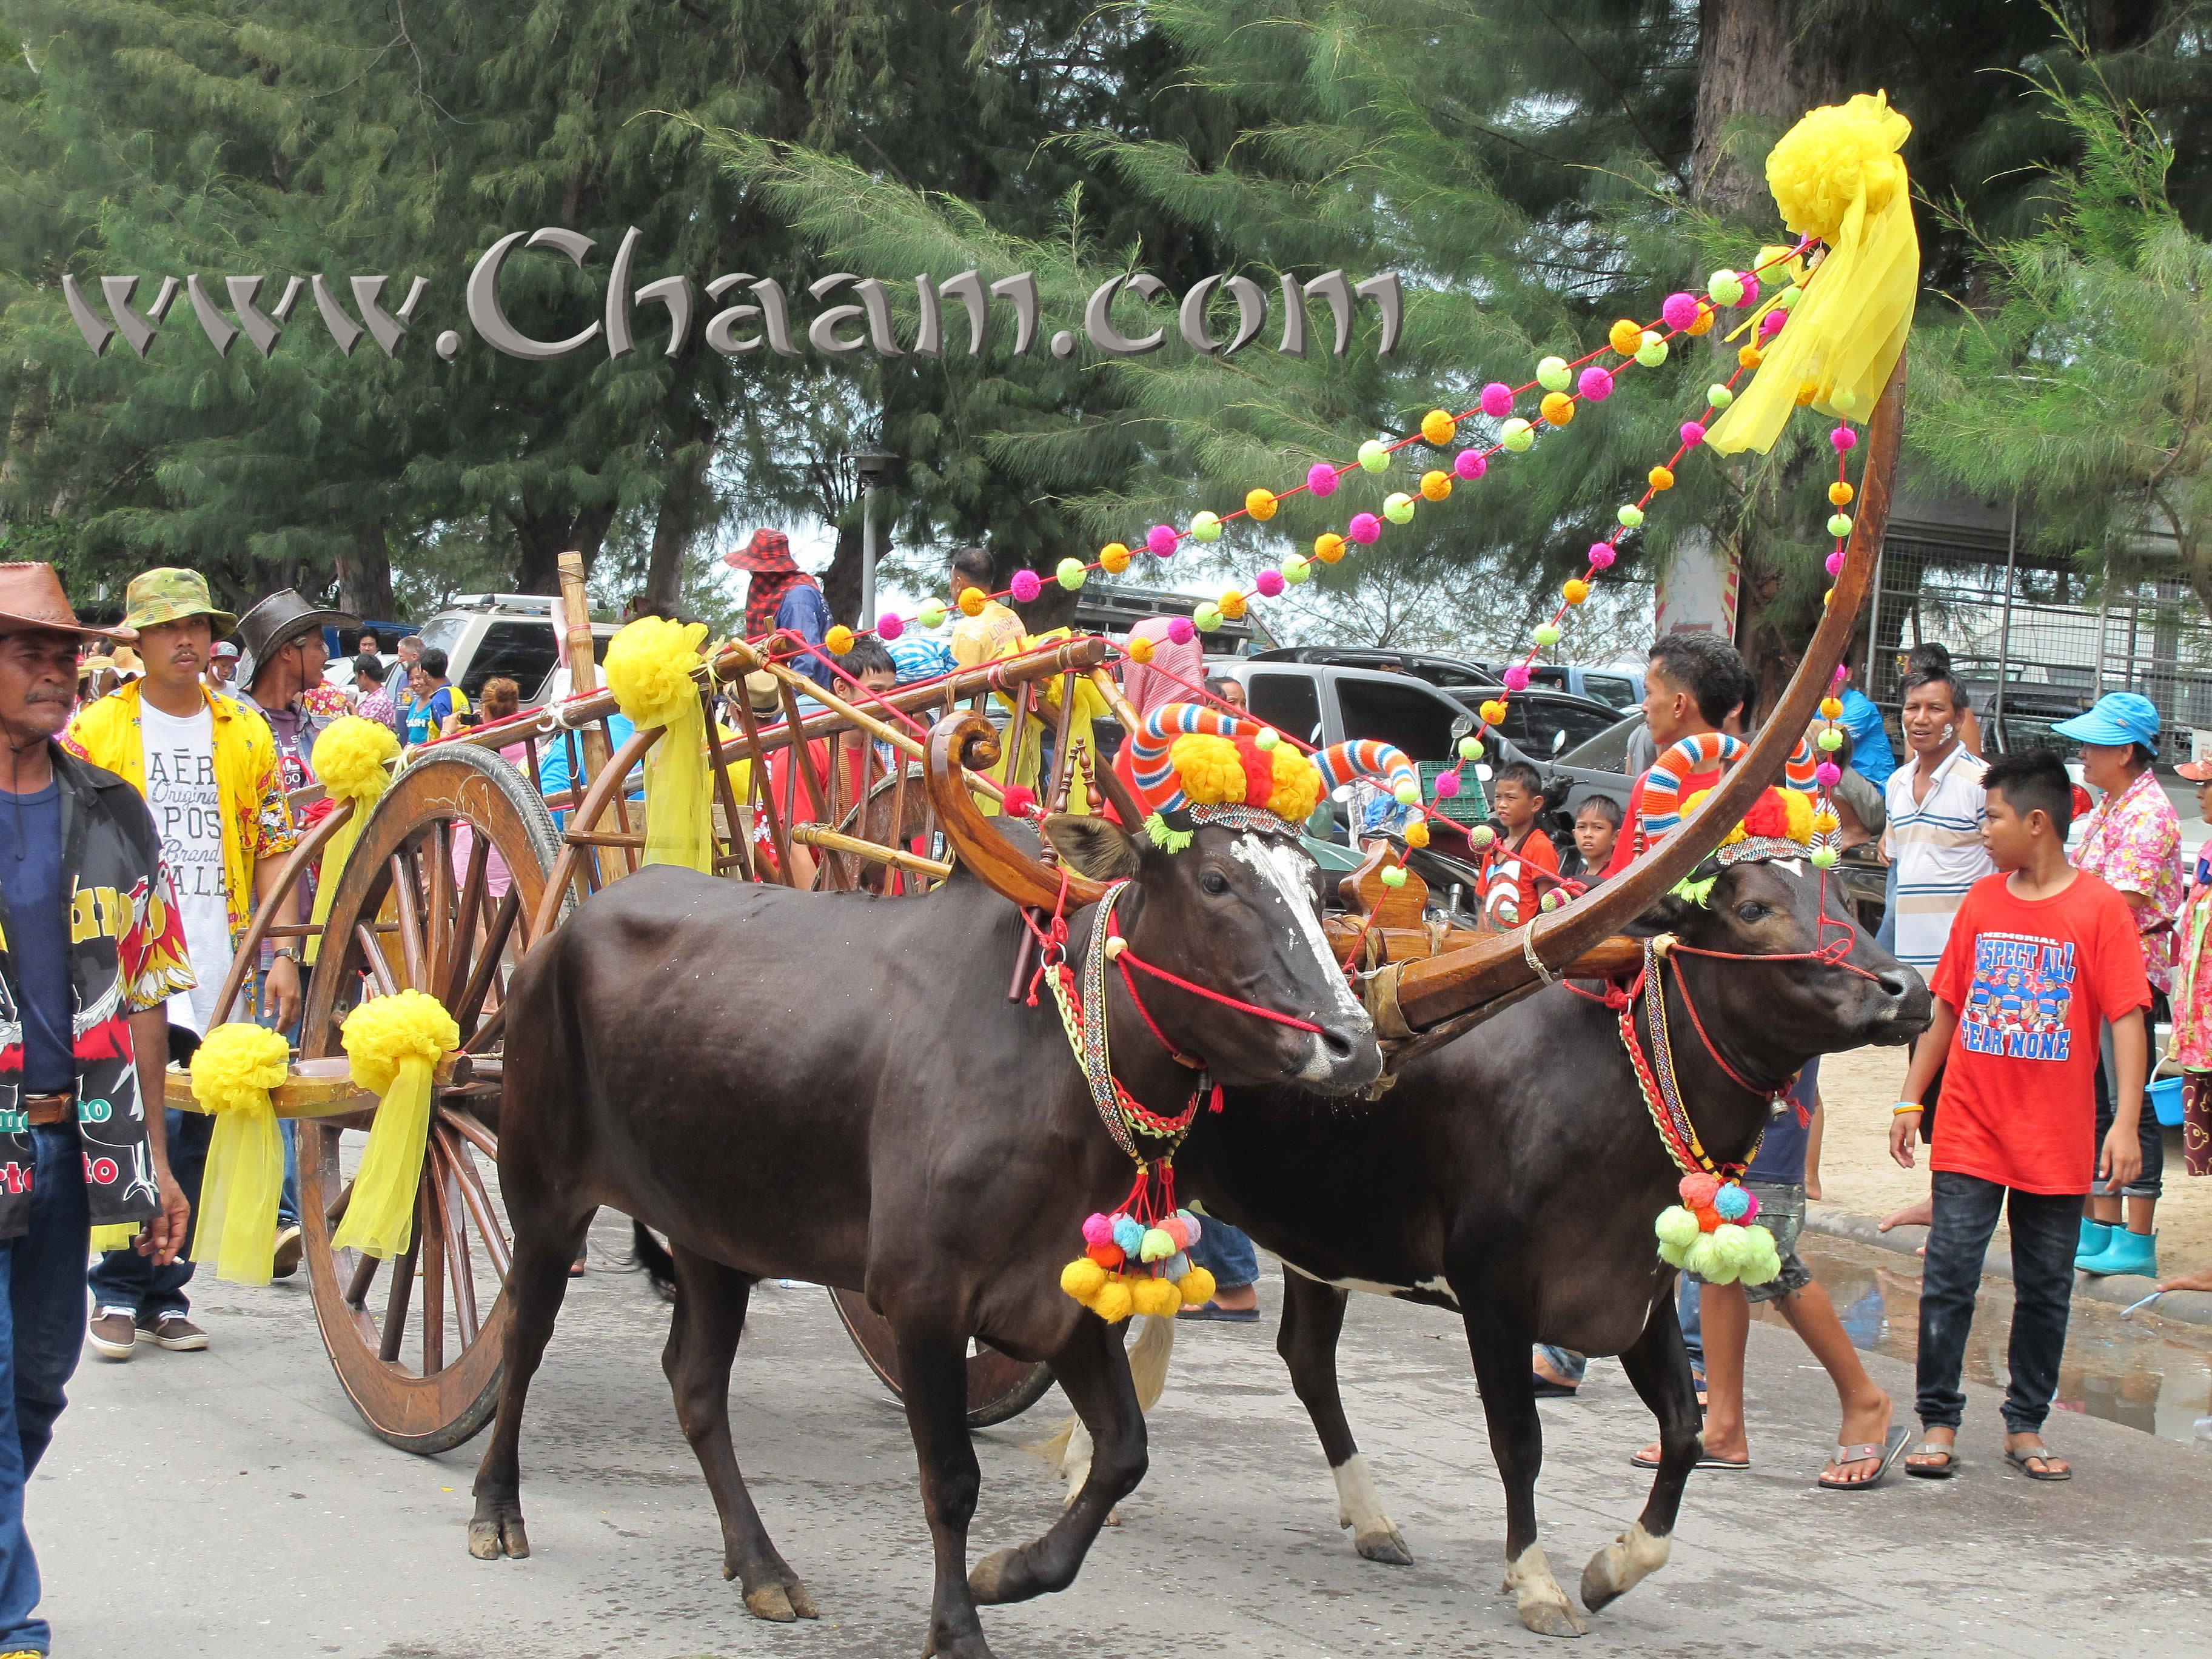 Water buffalos in Cha-Am at Songkran